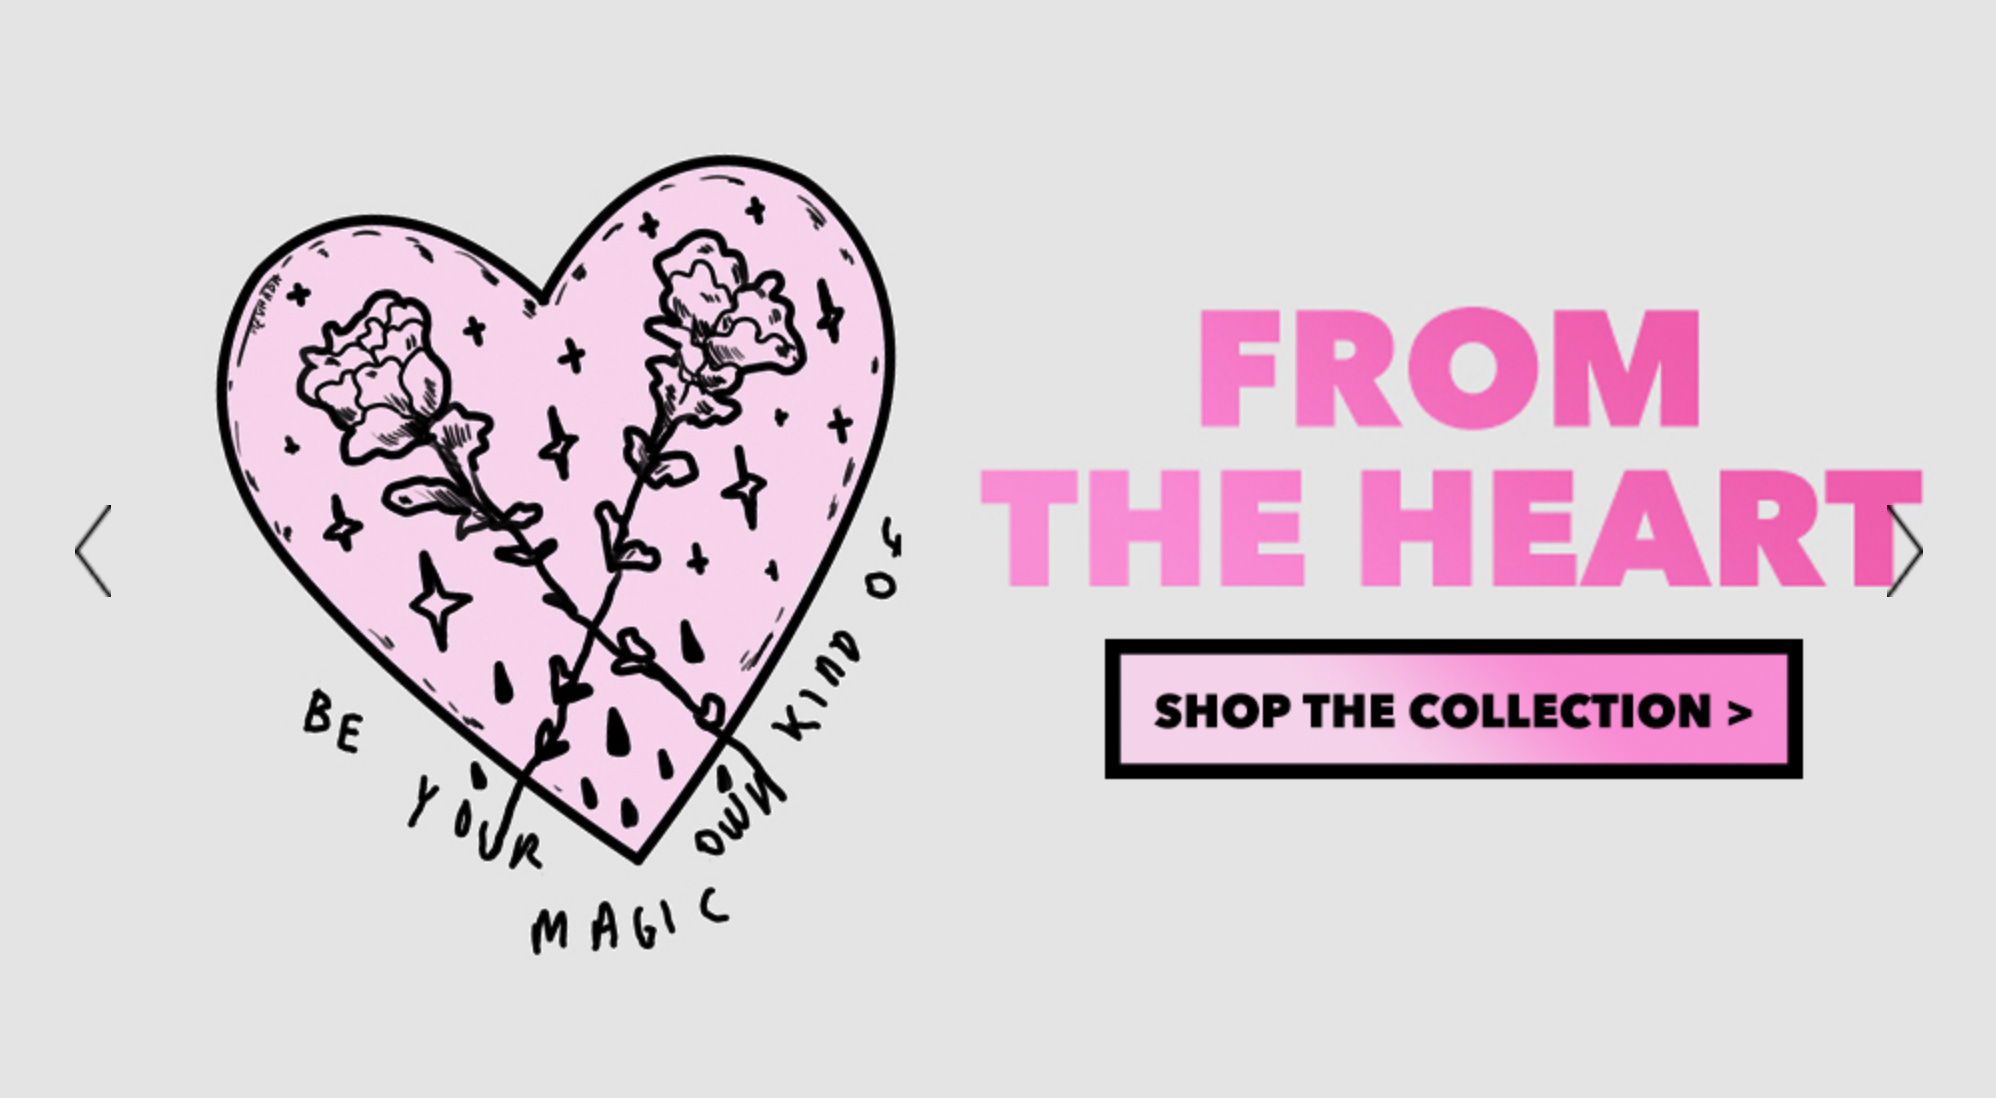 From the Hearth | Colección de Amor 2018 en Society6